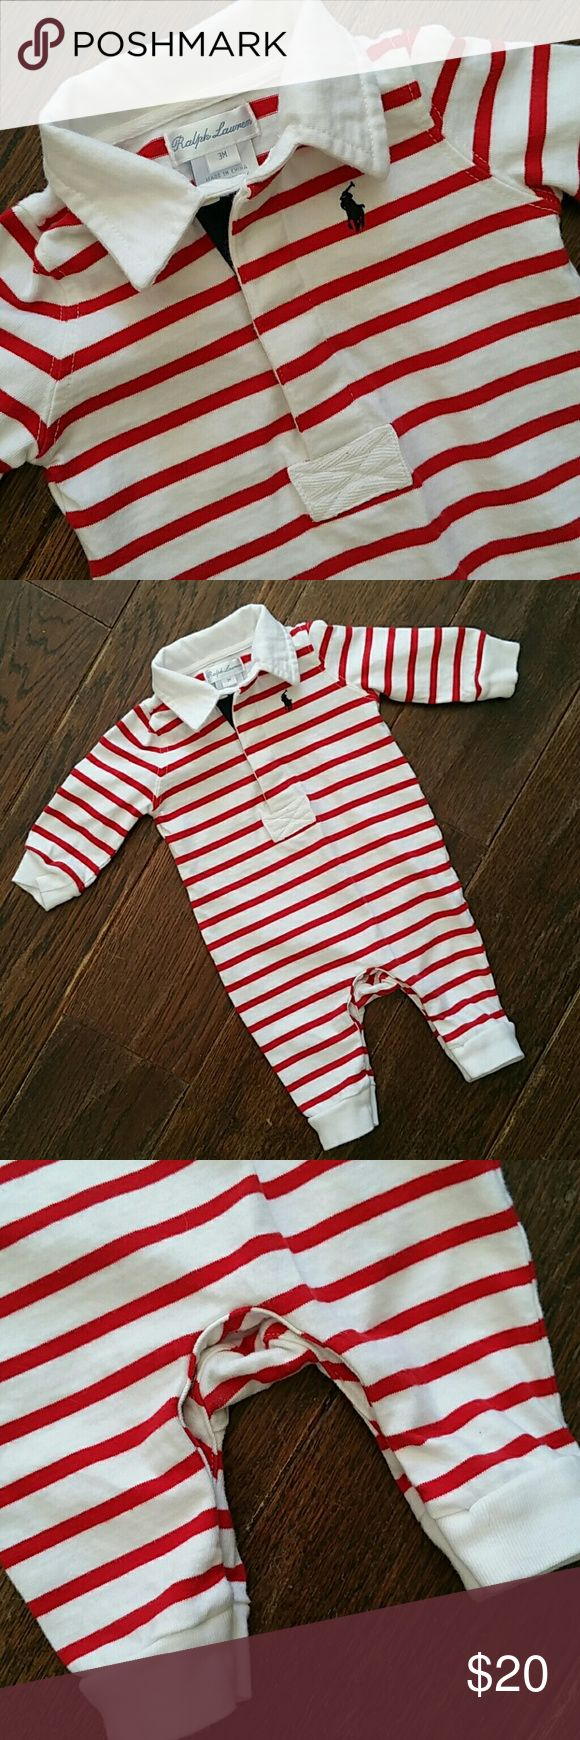 Ralph Lauren nautical jumpsuit. 3 mos. A super cute red and white striped nautical collared jumper 100% cotton made by Ralph Lauren Ralph Lauren One Pieces